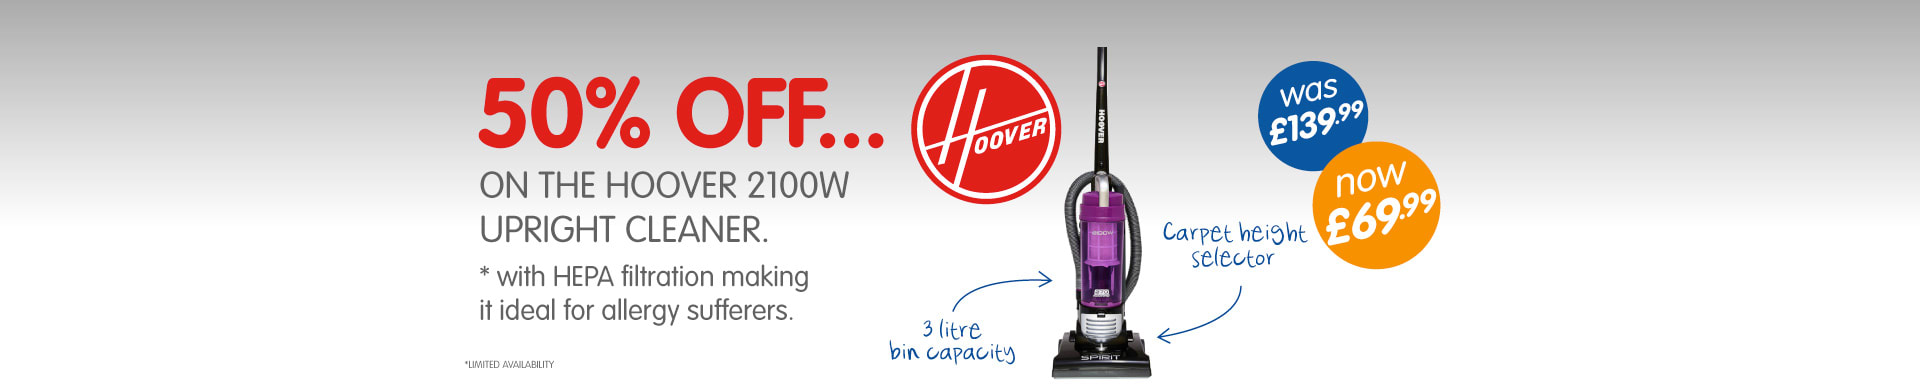 50% OFF on the Hoover 2100W Upright Cleaner from B&M Stores.